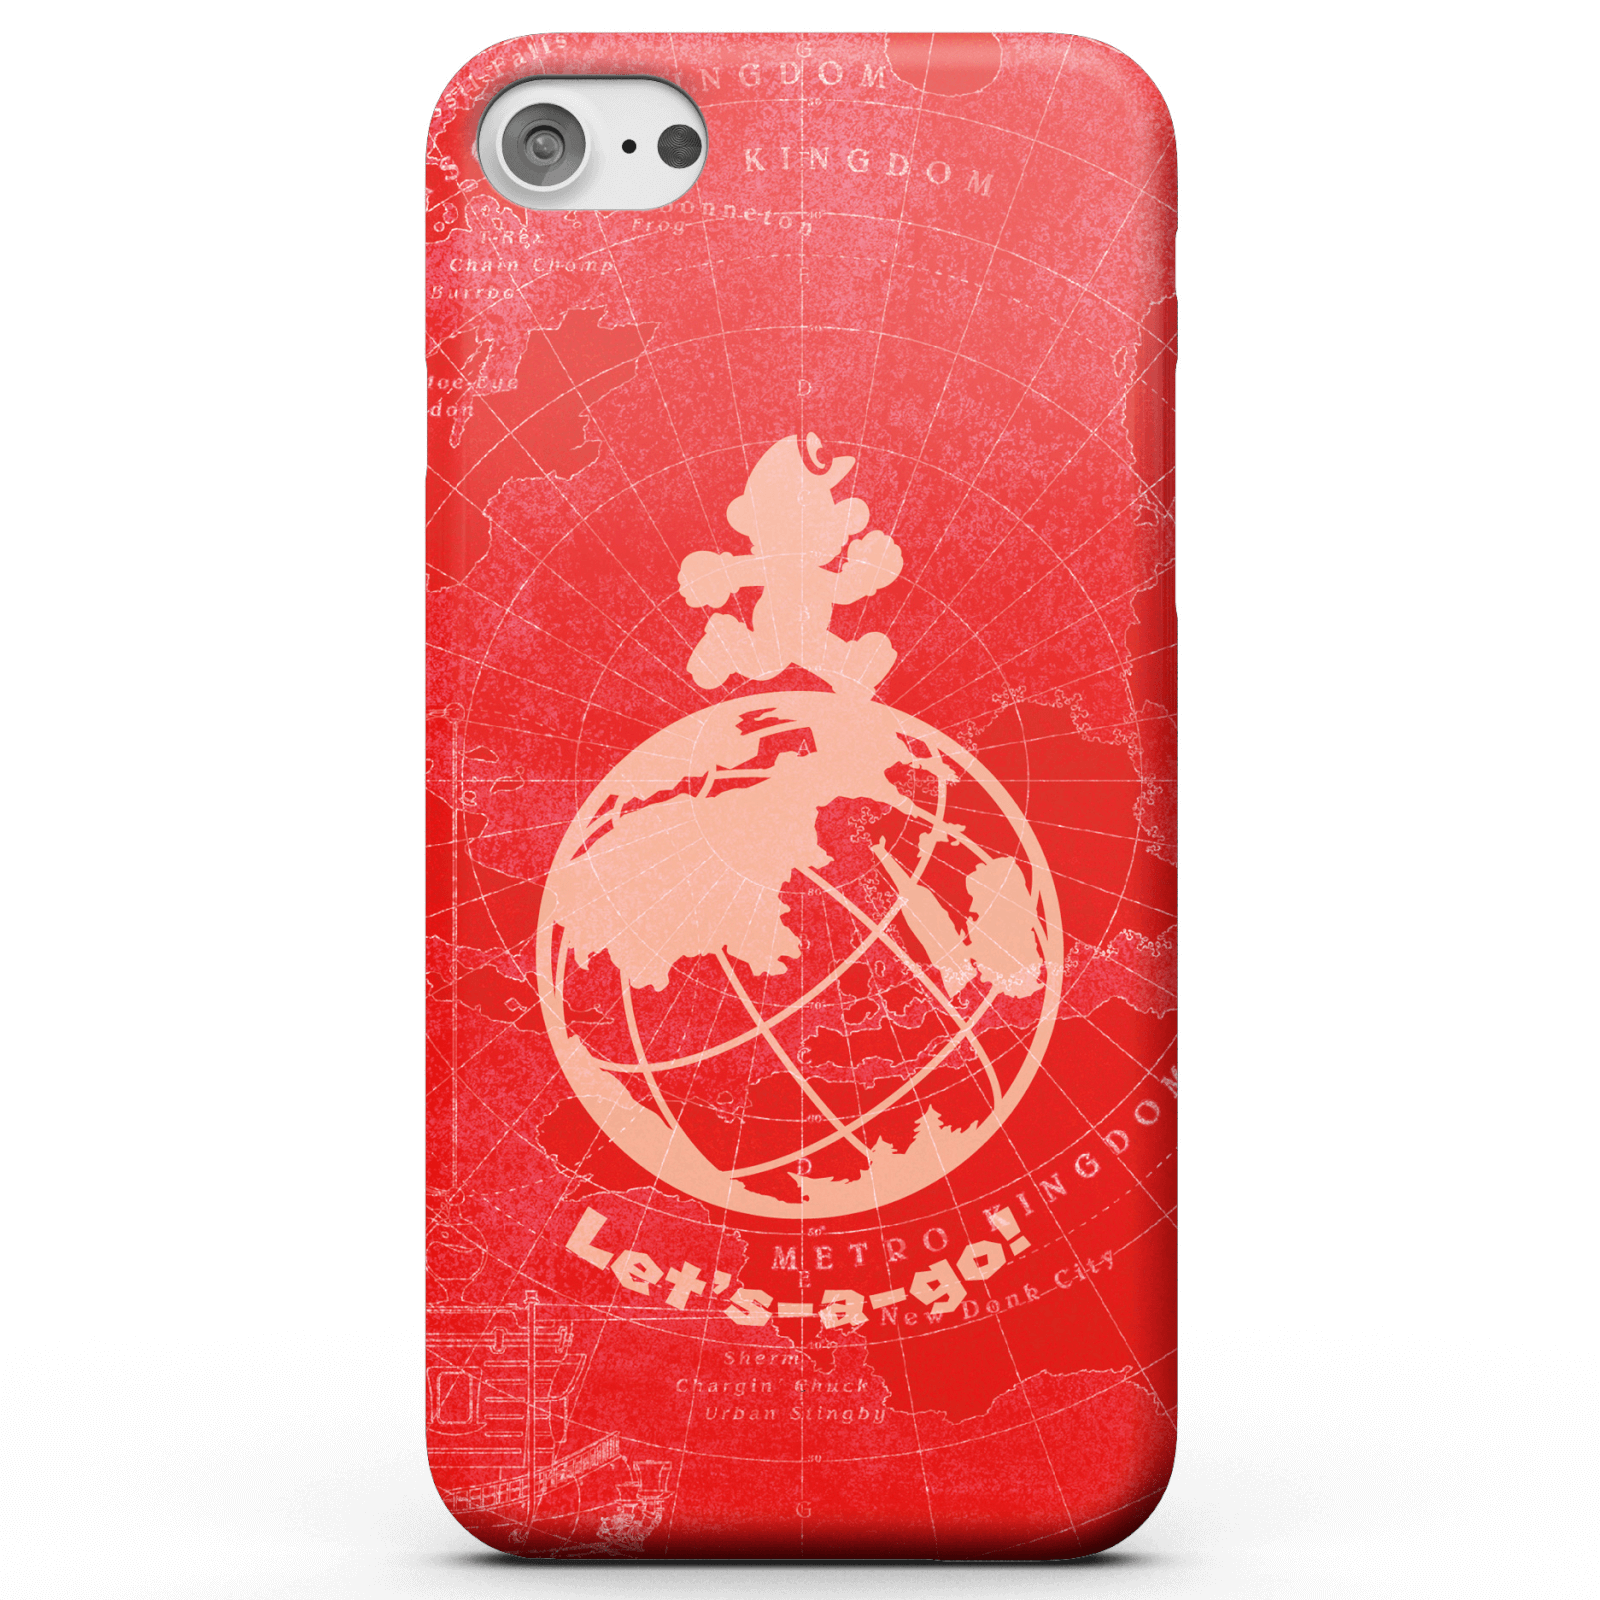 Super Mario Odyssey Lets A Go Phone Case for iPhone and Android